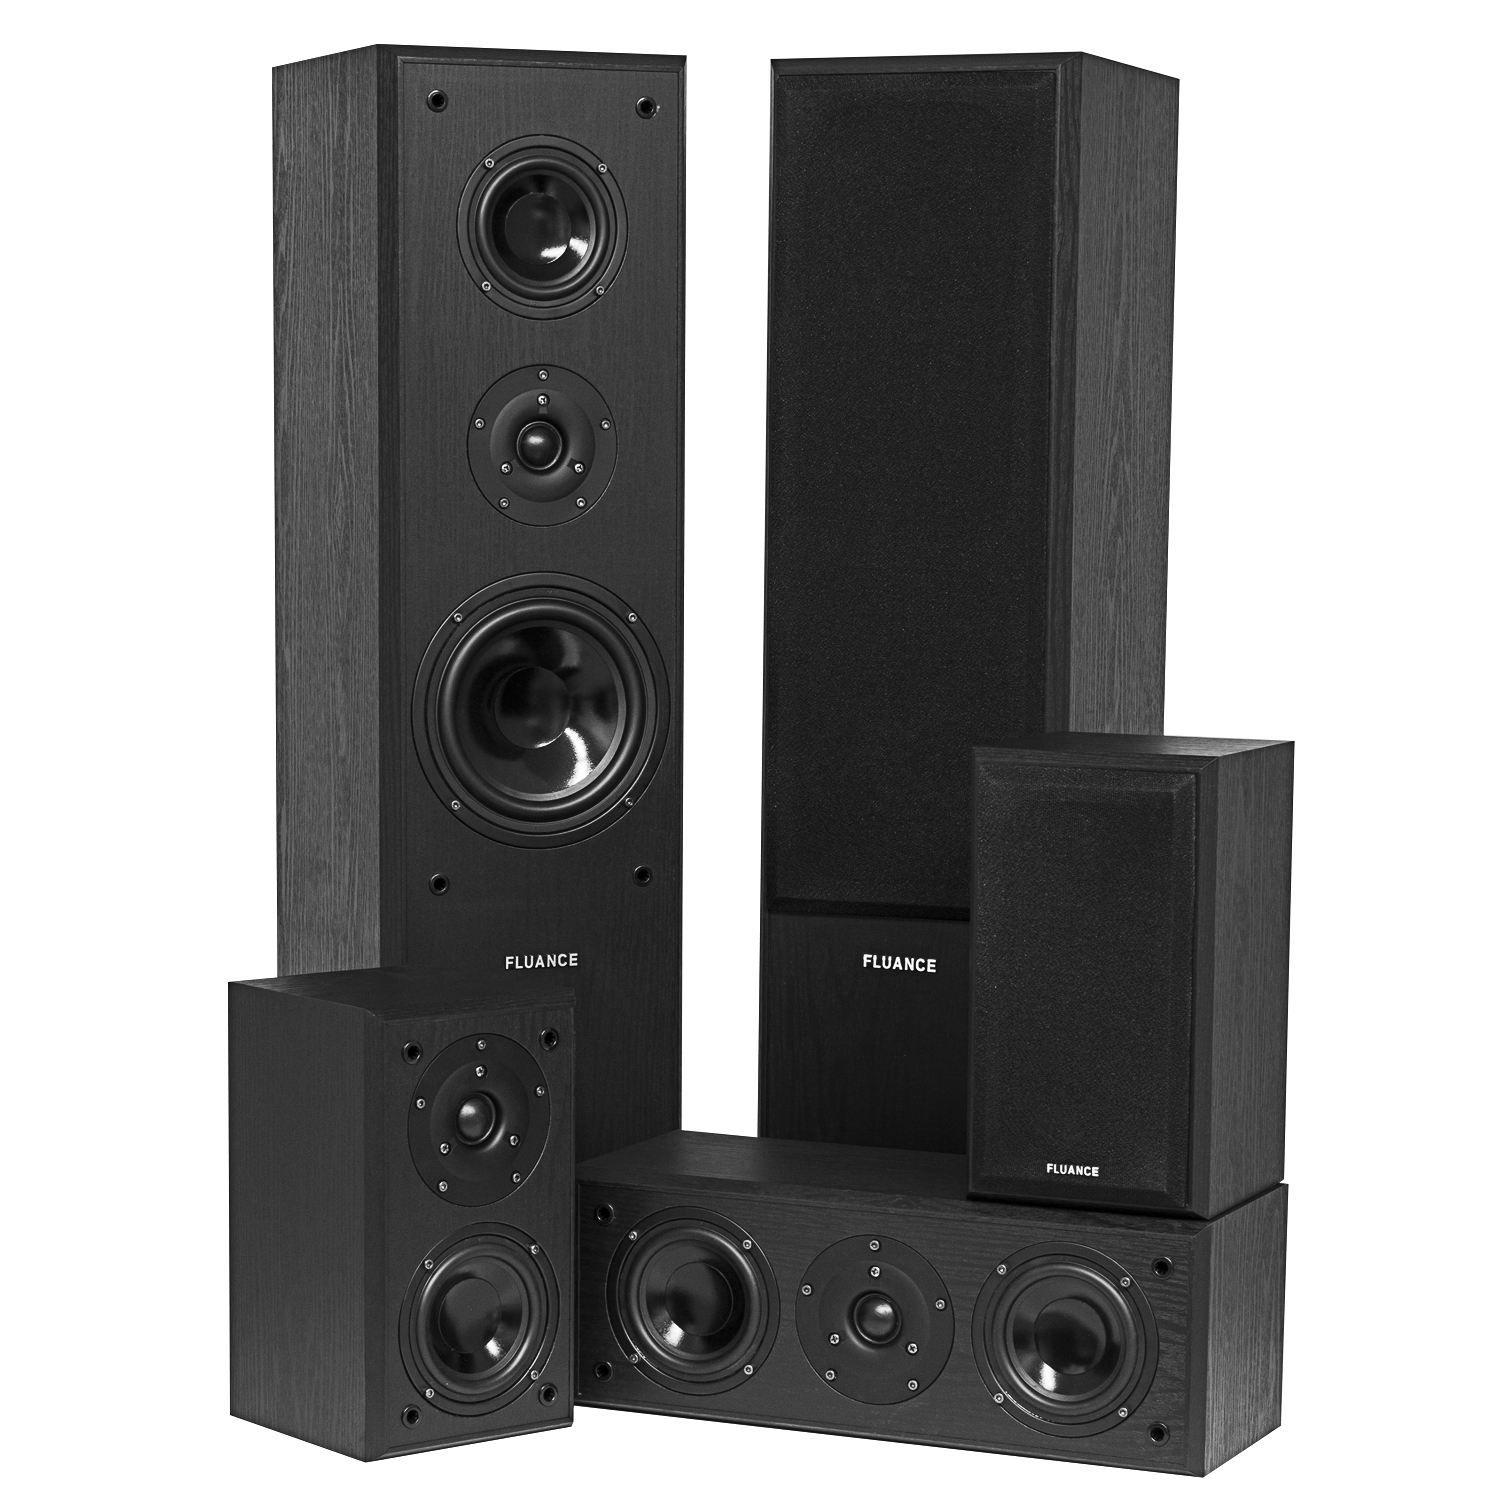 Fluance Surround Sound Home Theater 5 Speaker System Model AVHTB by Fluance